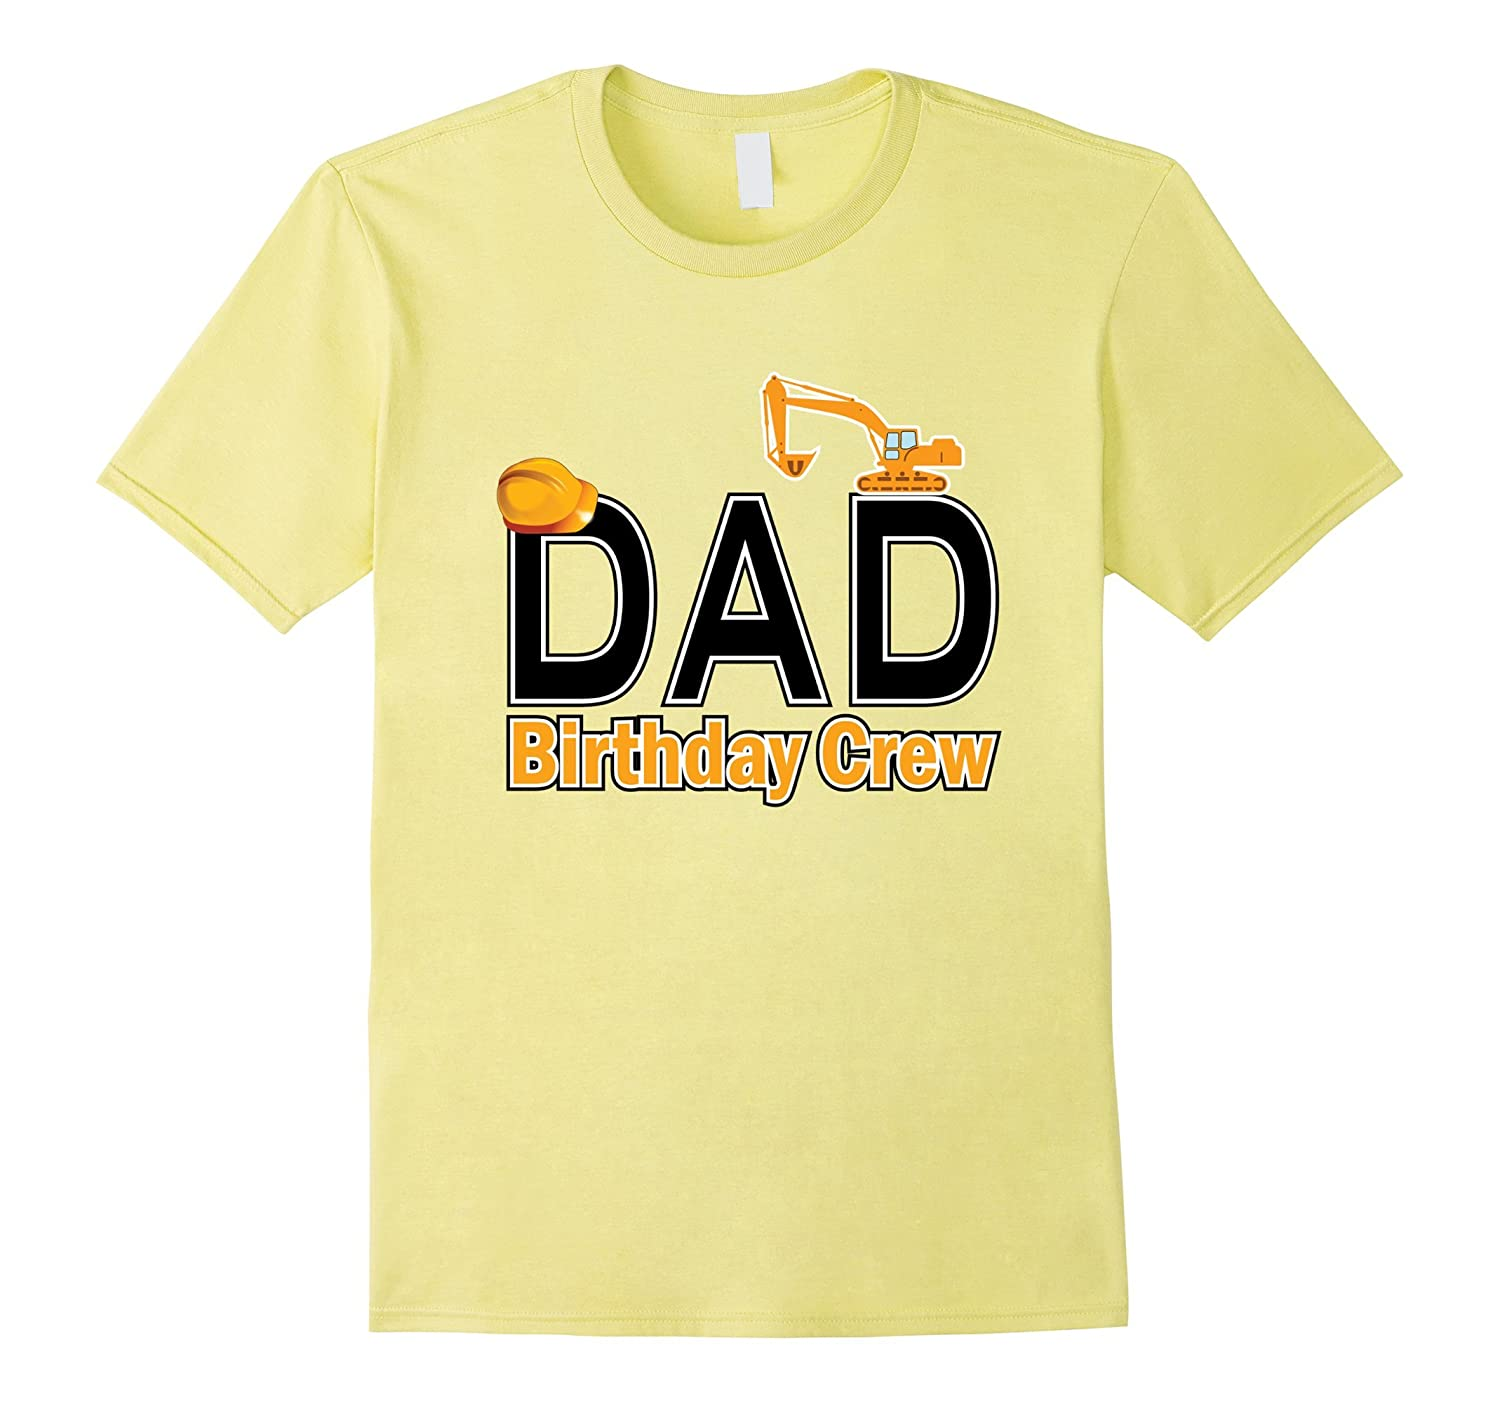 Dad Birthday Crew Shirts For Construction Party TD